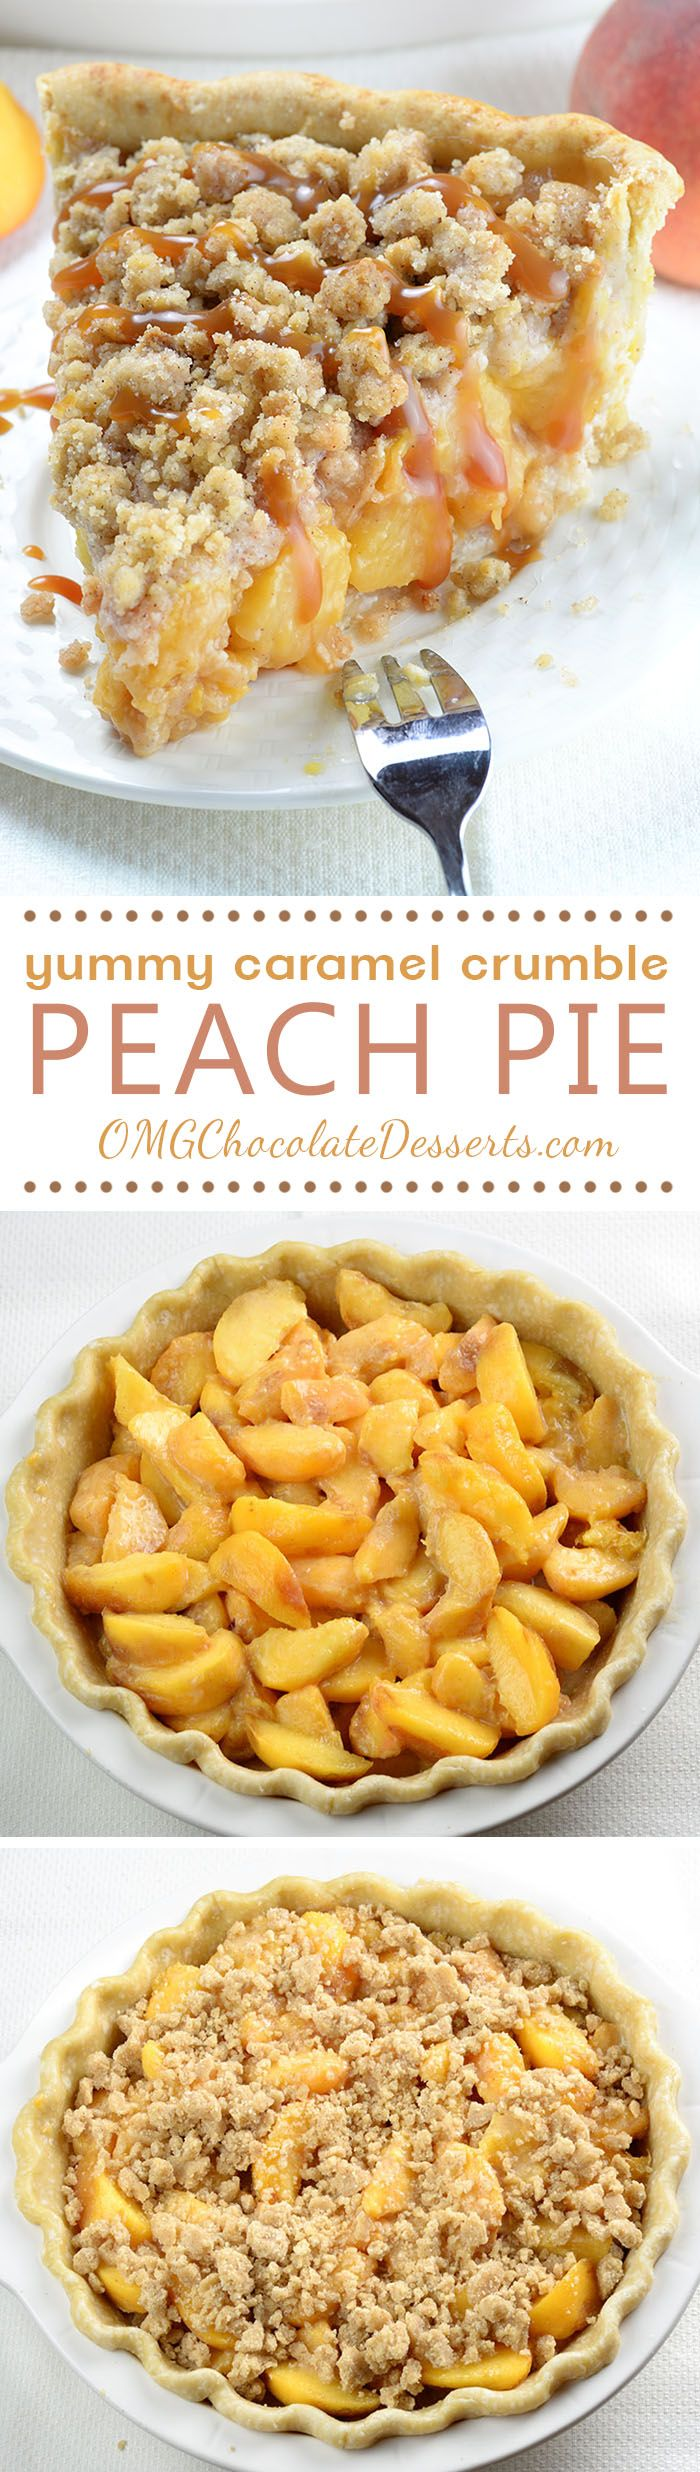 Caramel Crumble Peach Pie - homemade buttery crust packed with sweet juicy…